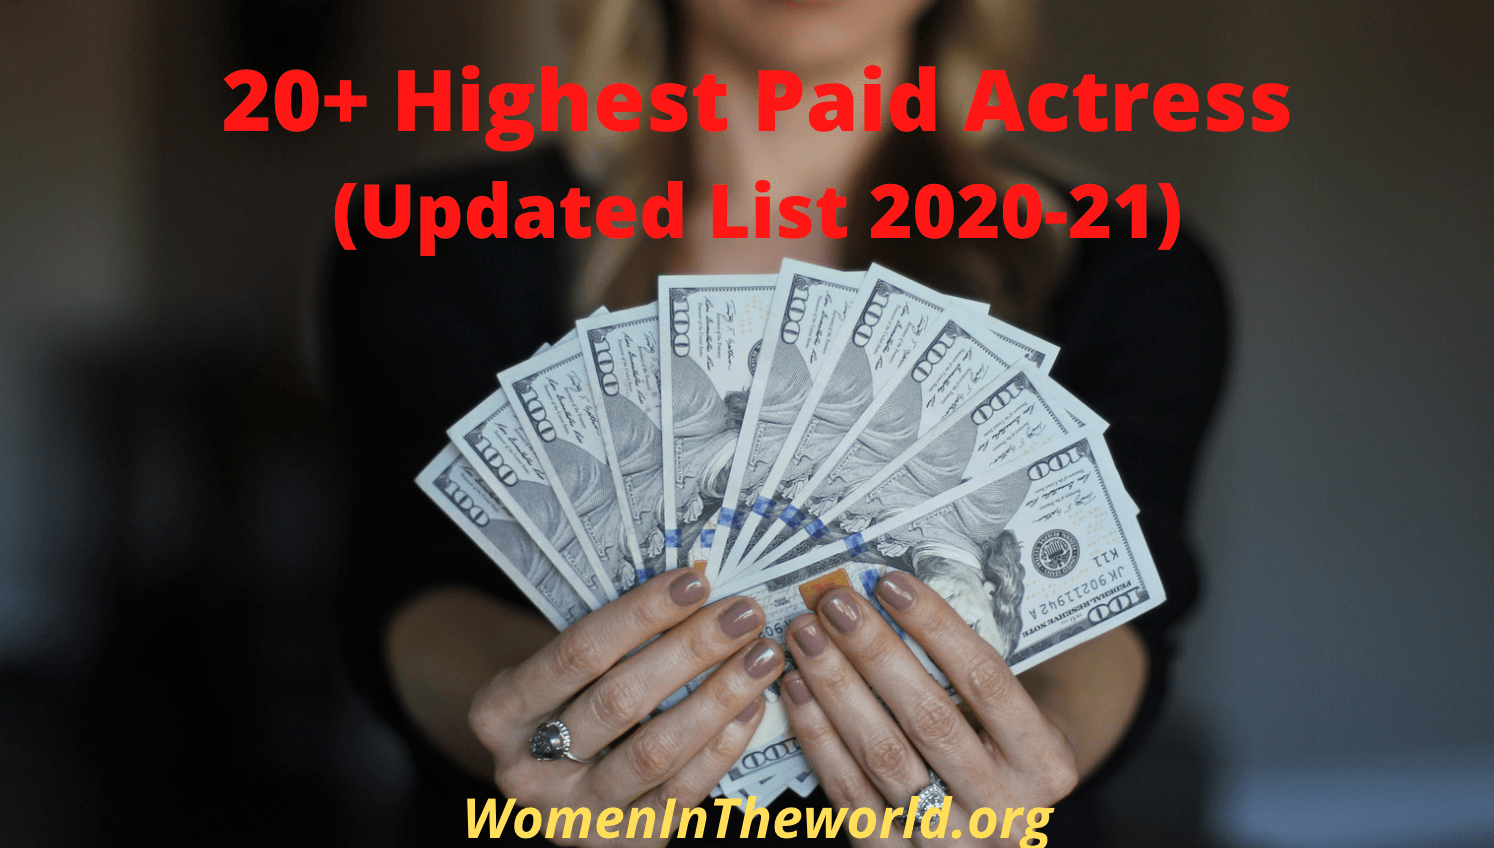 Highest Paid Actress